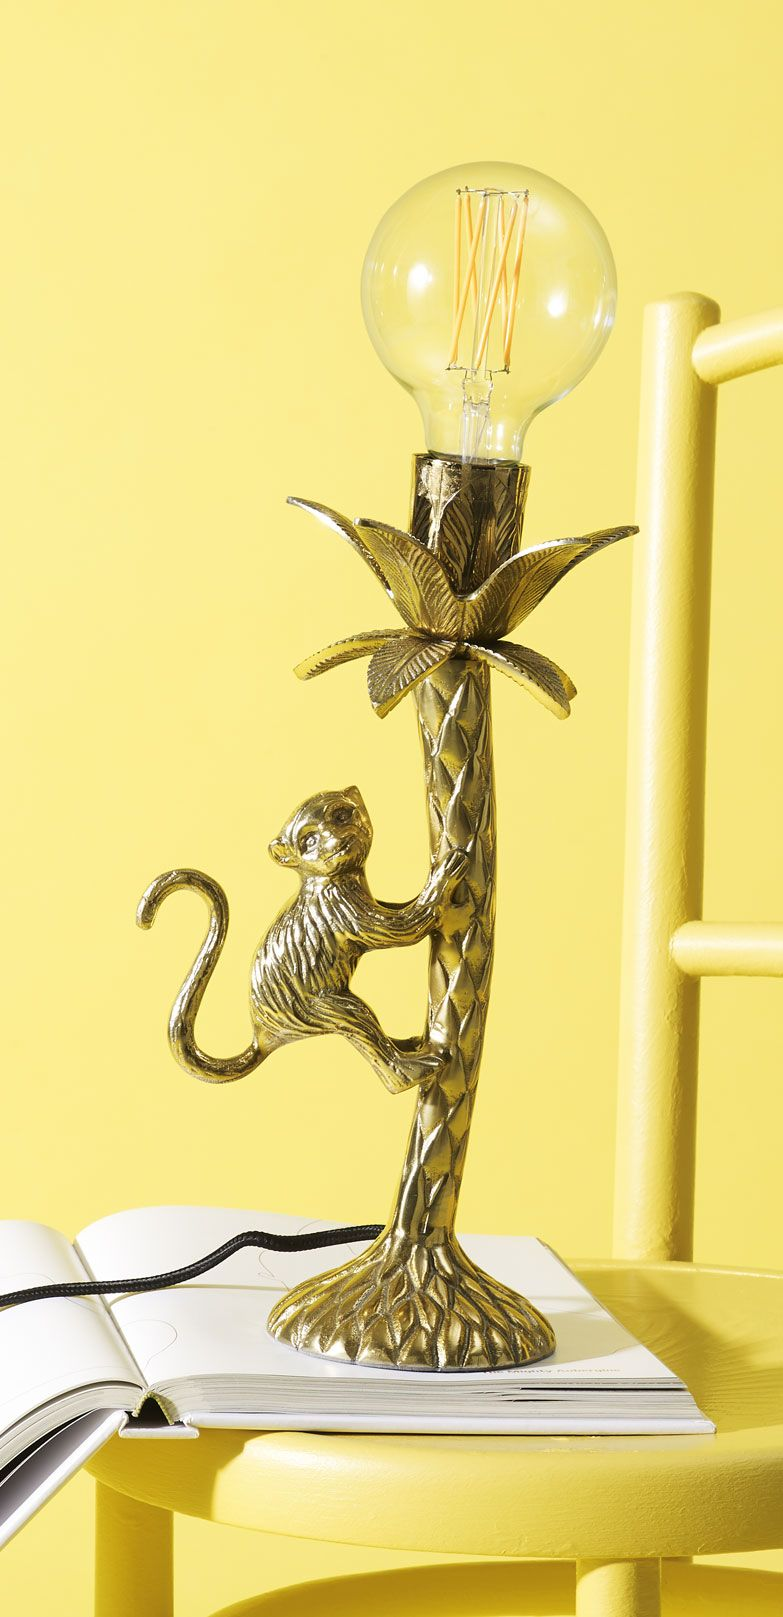 Seletti Primate Lighting Indoor Monkey Lamp Replacement LED Bulb